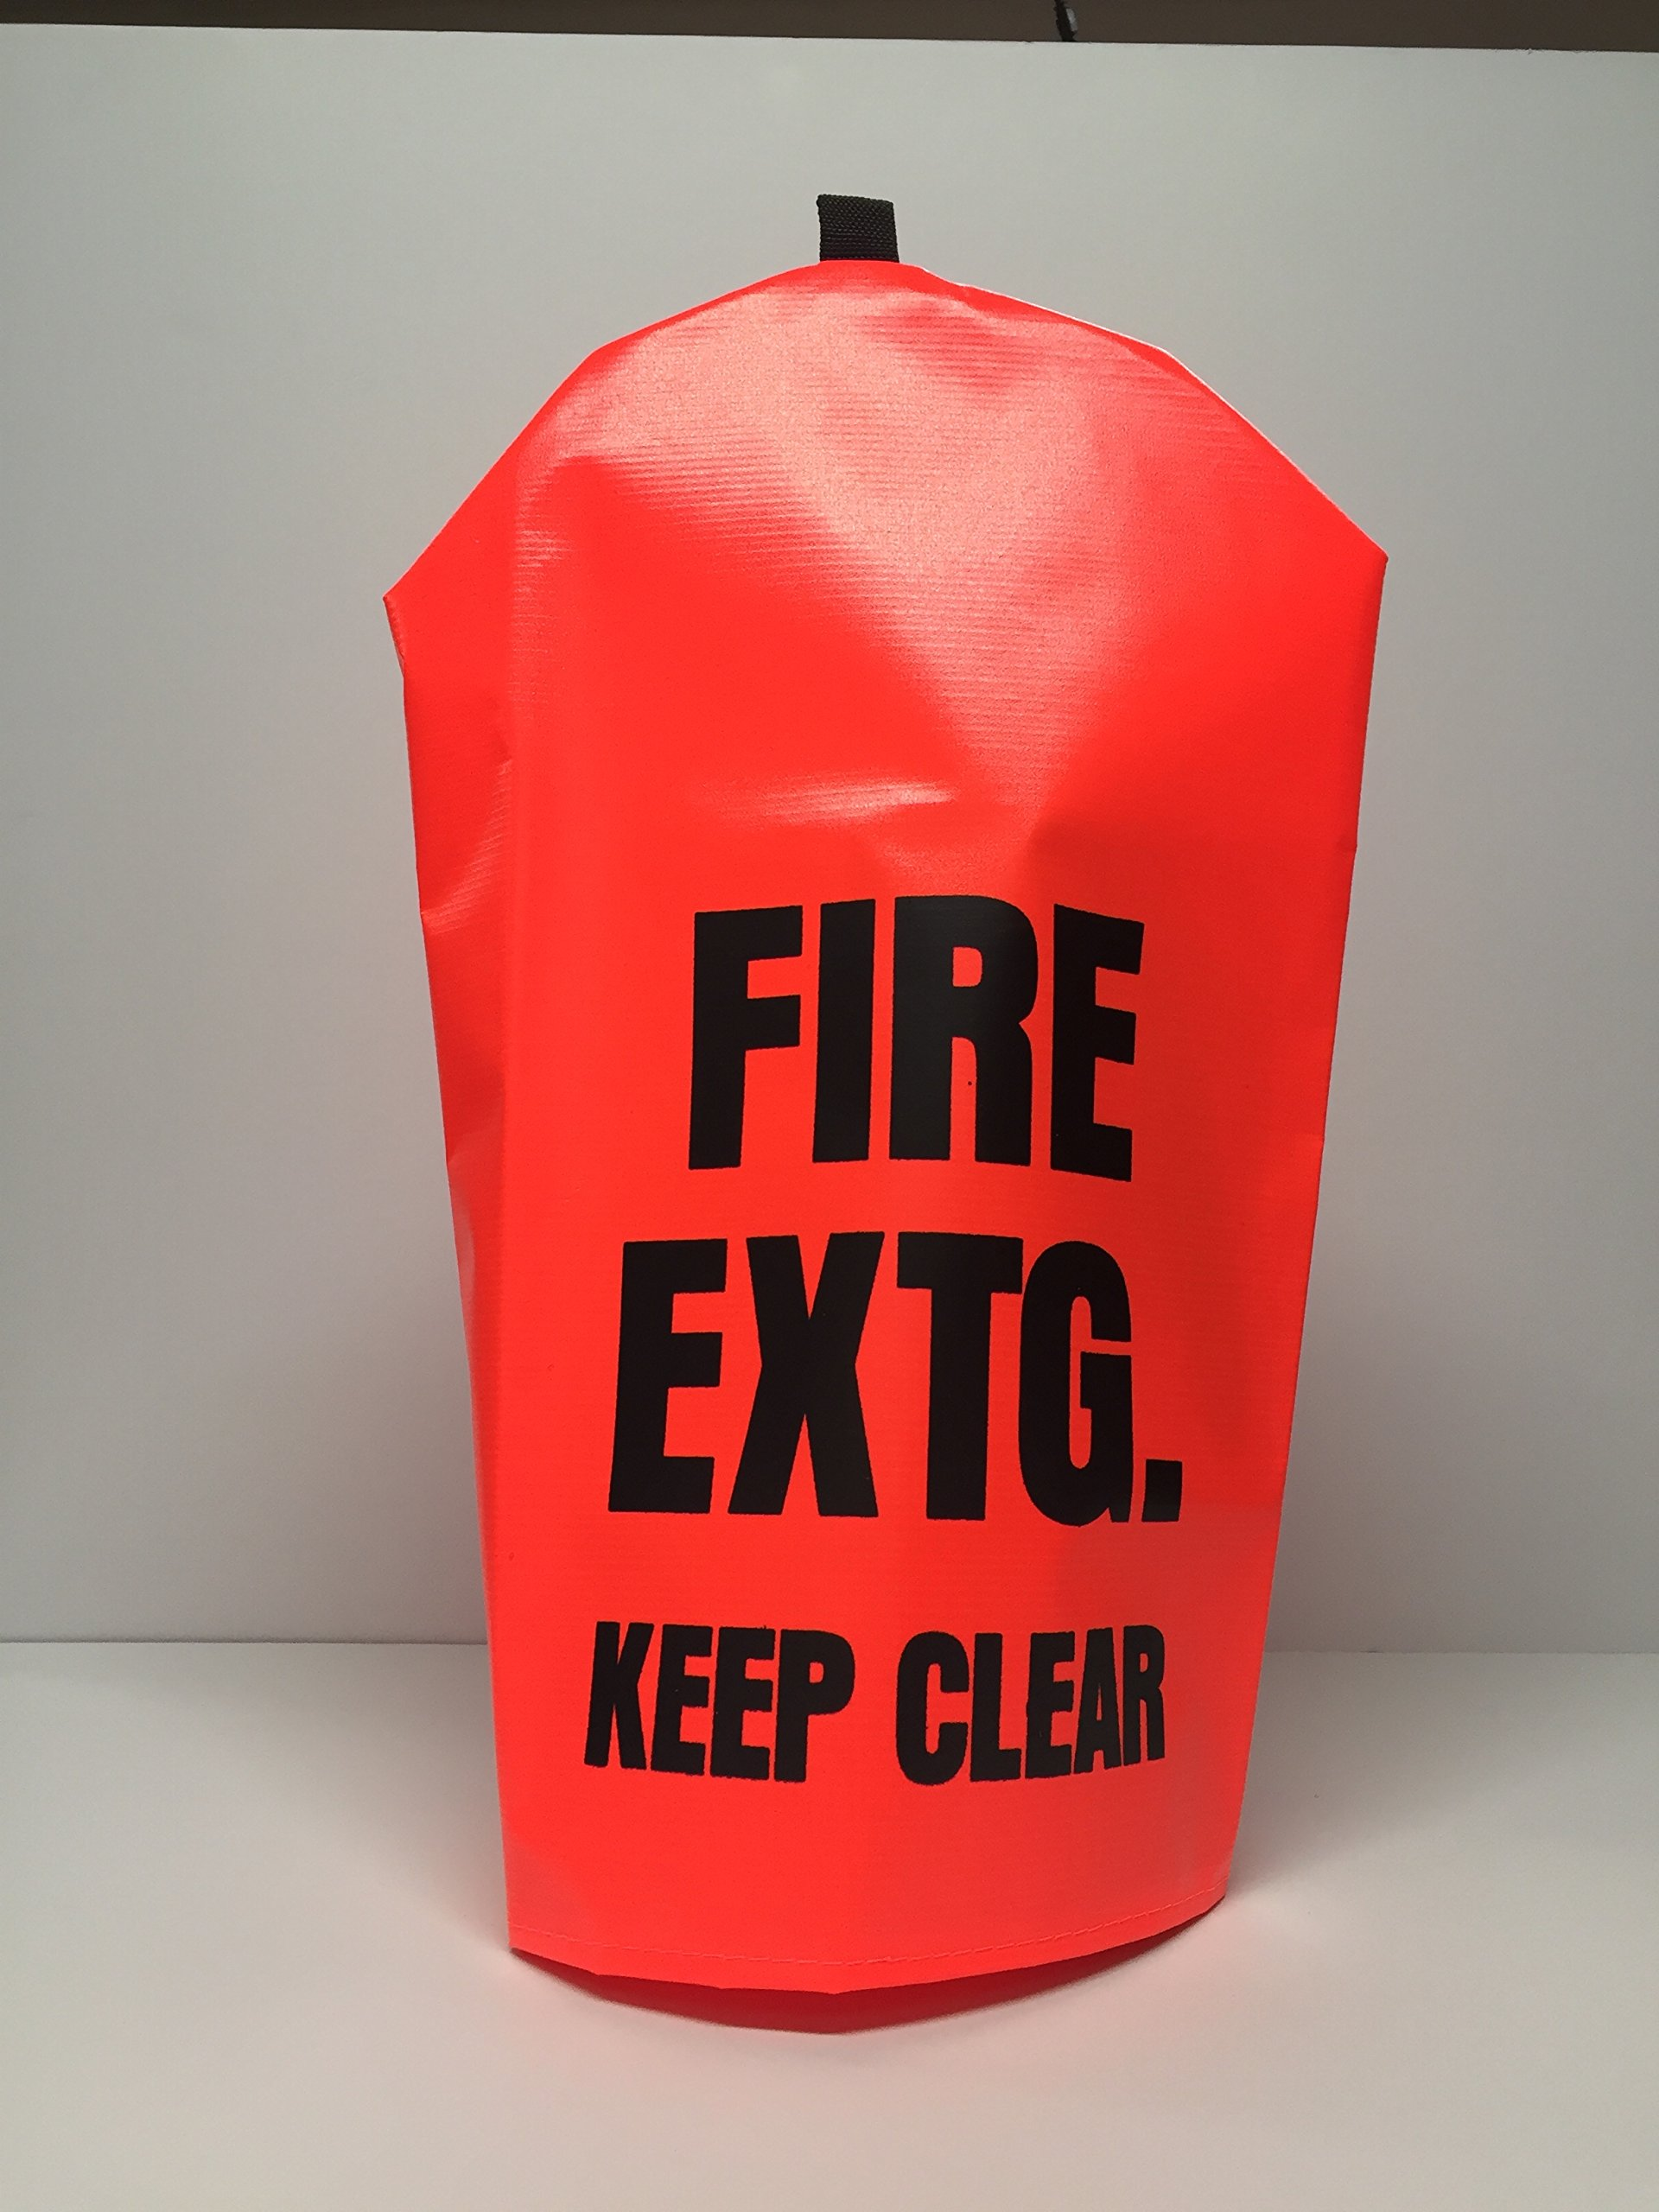 FIRE EXTINGUISHER COVER (PEK 300) NO WINDOW - Large, fits 10-20lbs extinguishers (5)